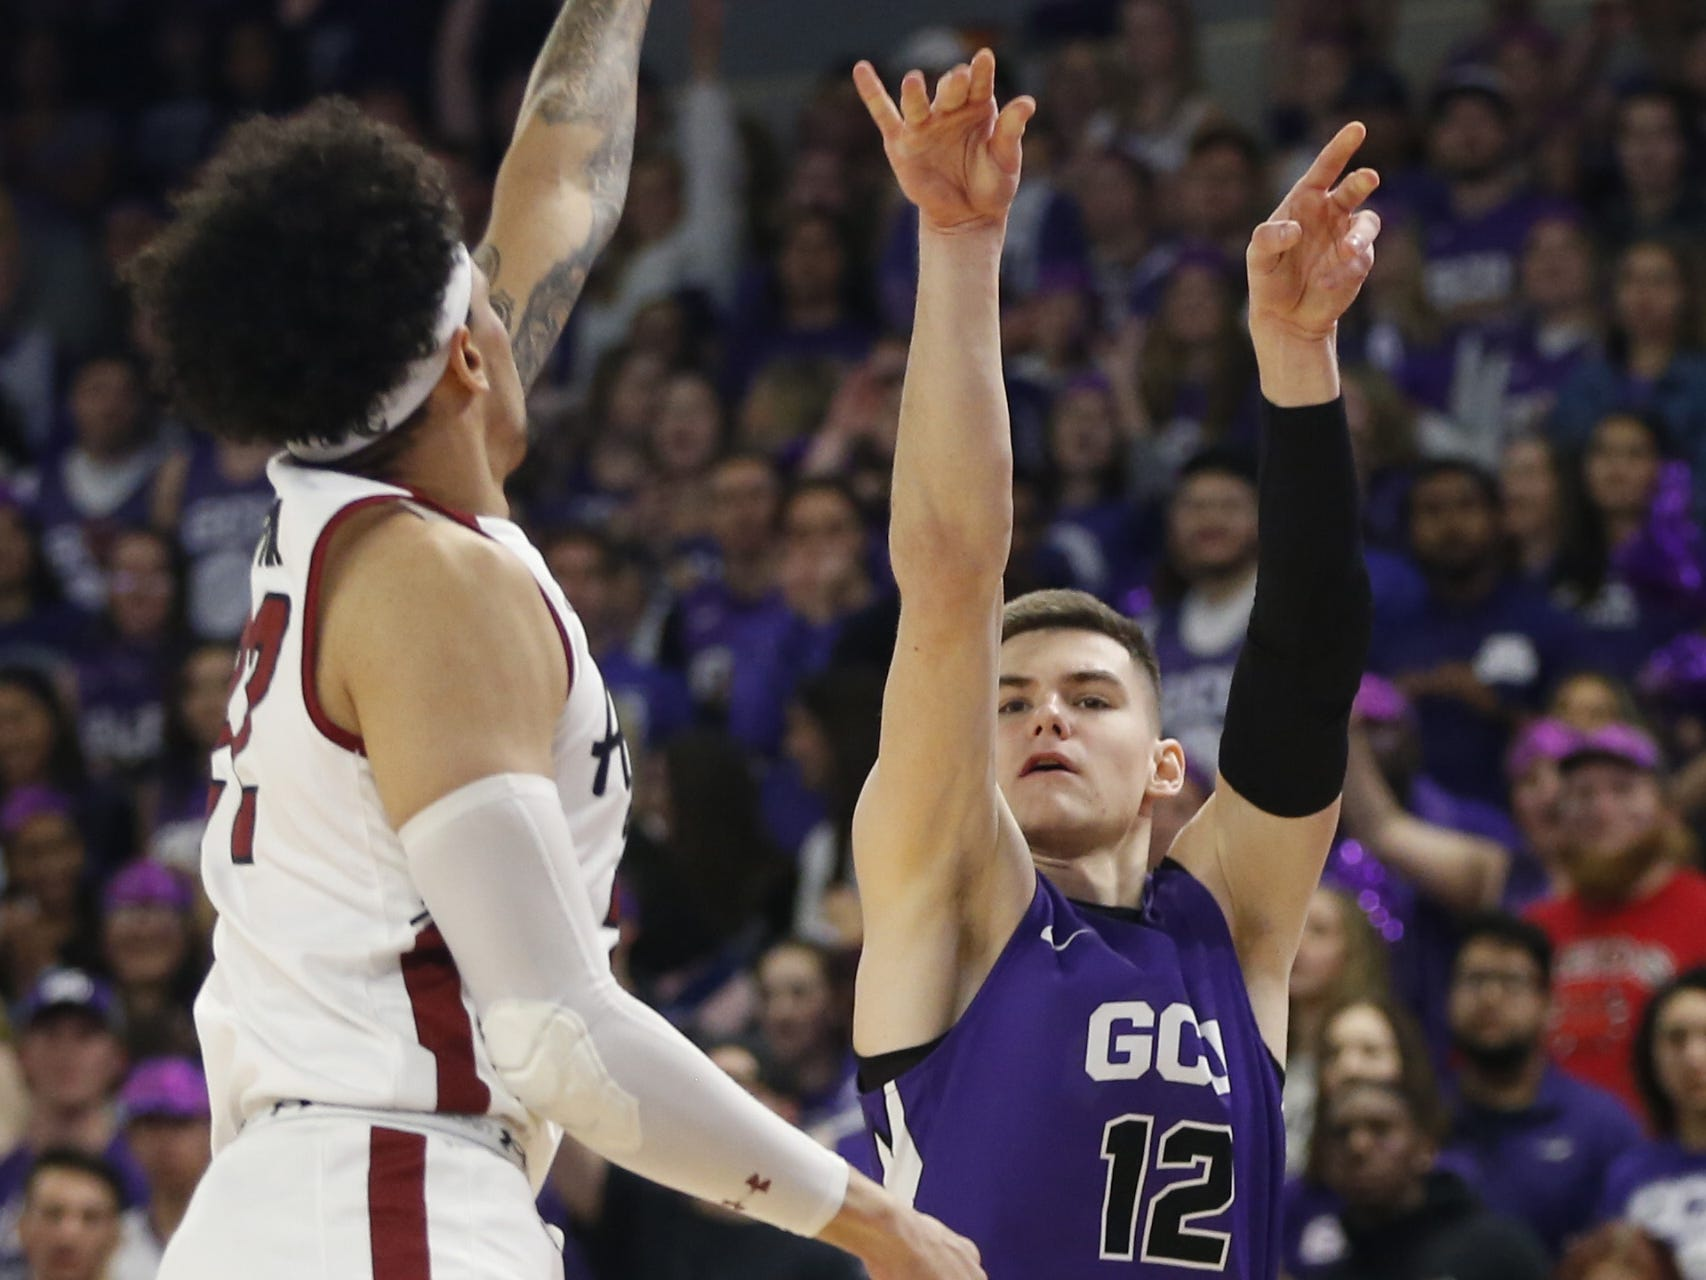 GCU's Roberts Blumbergs (12) shoots against New Mexico State's Eli Chuha (22) during the first half at Grand Canyon University Arena in Phoenix, Ariz. on February 9, 2019.